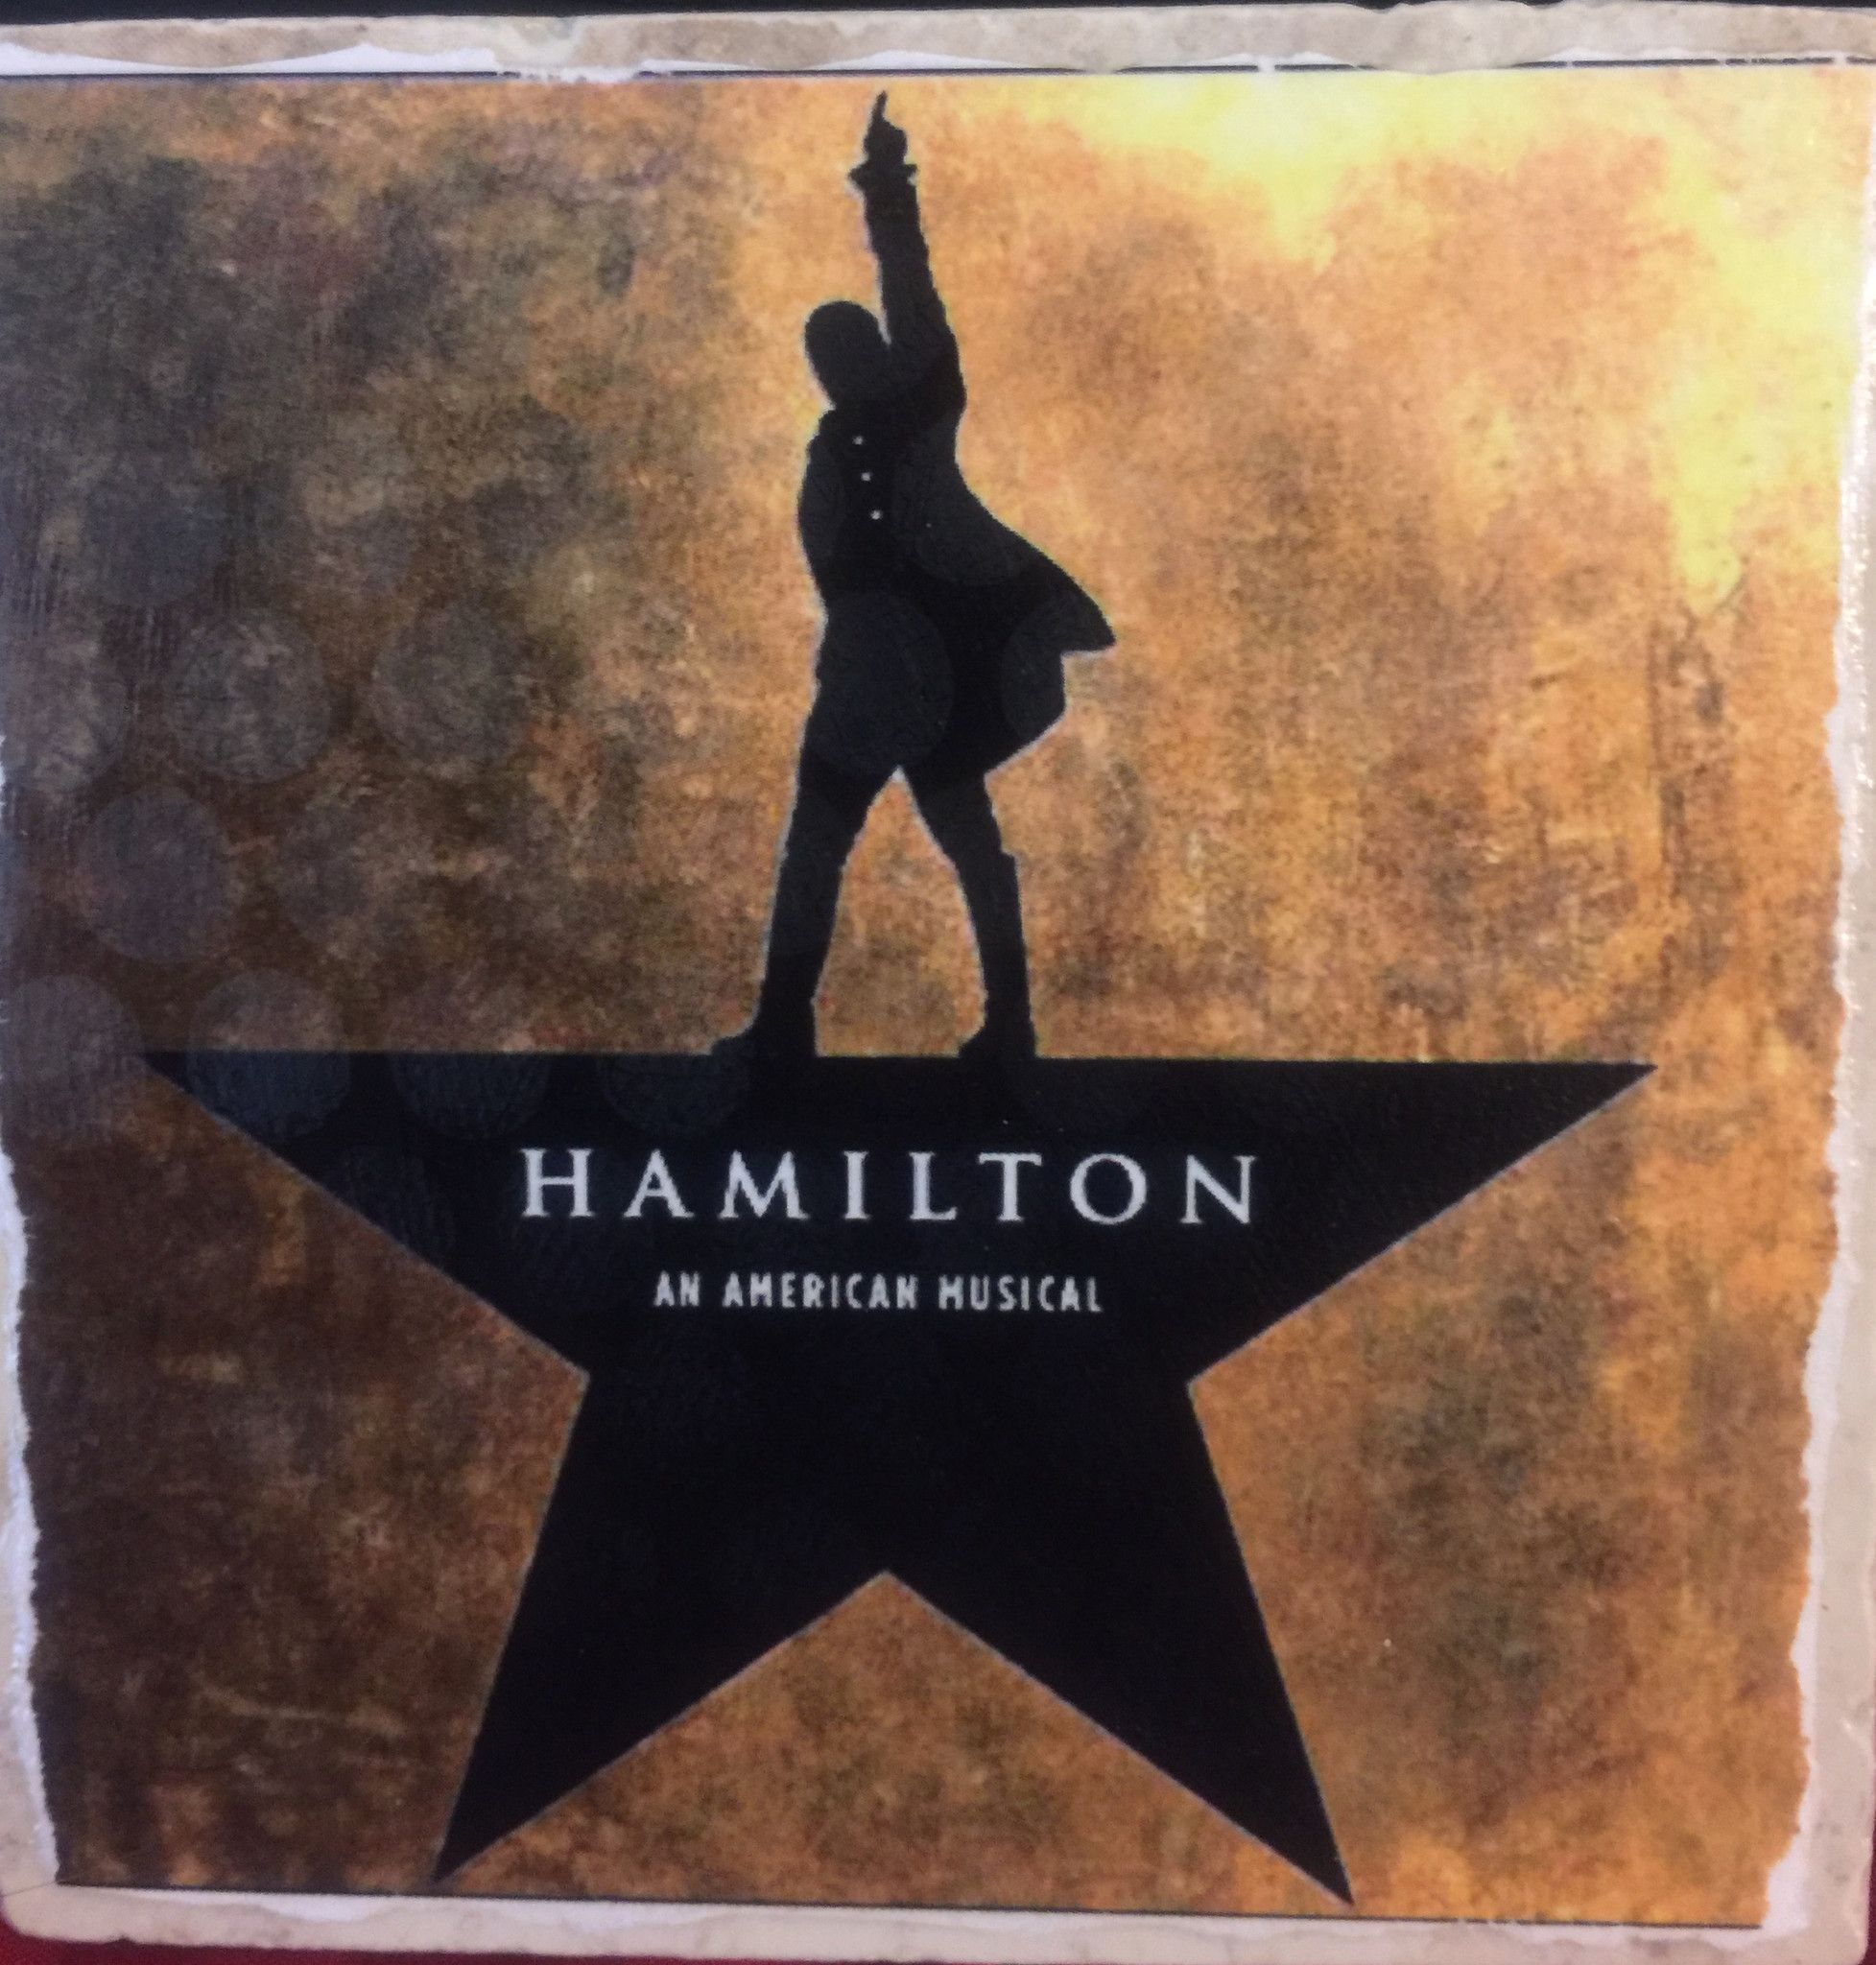 Choose from one of our already made tiles listed here or have your favorite show custom made just for you: Newsies, Kinky Boots, Hamilton, The Book of Mormon, Xanadu and The Wiz are available to compl